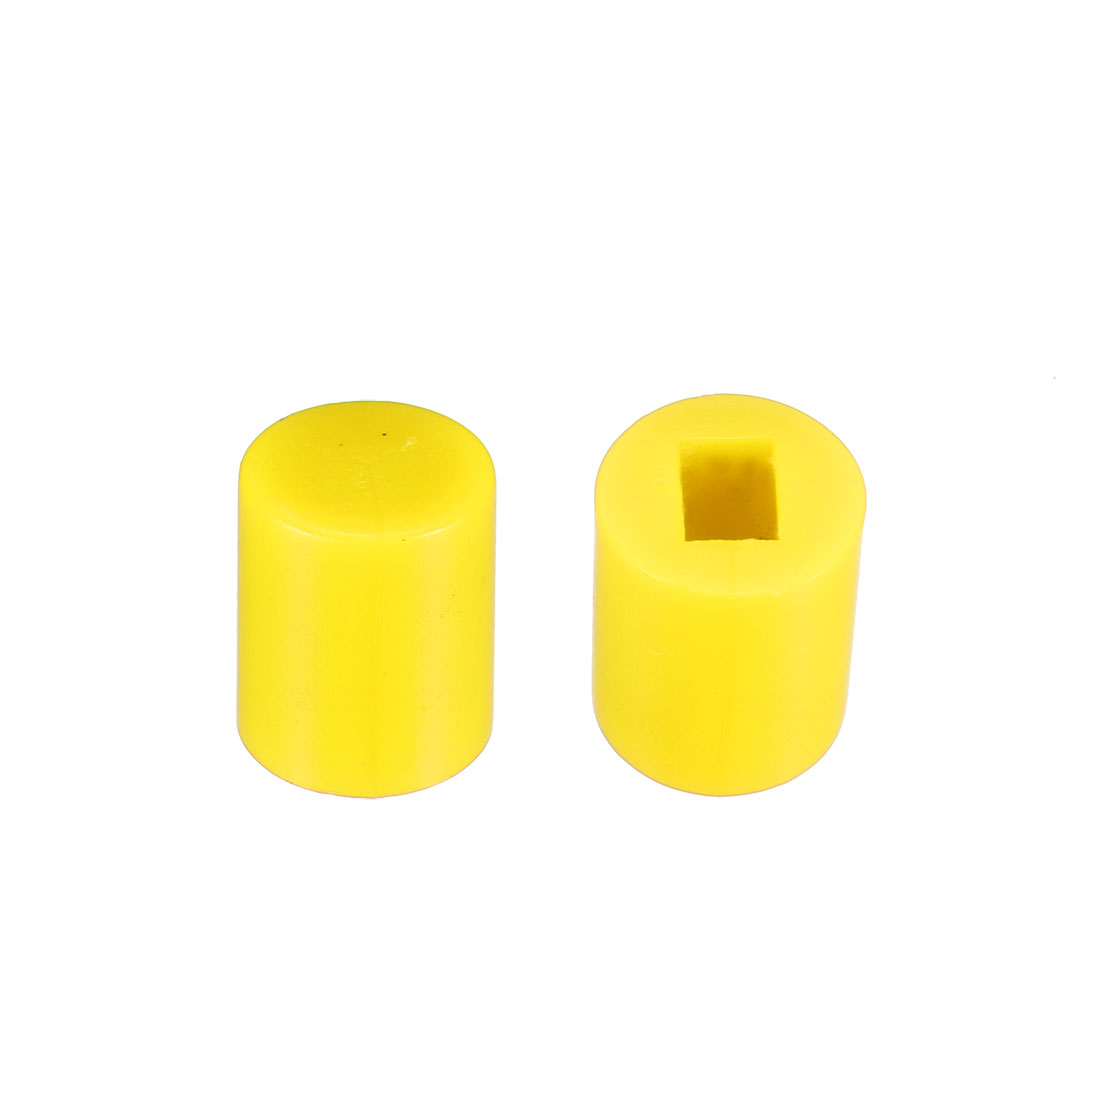 40Pcs Plastic 6x7mm Latching Pushbutton Tactile Switch Caps Cover Keycaps Yellow